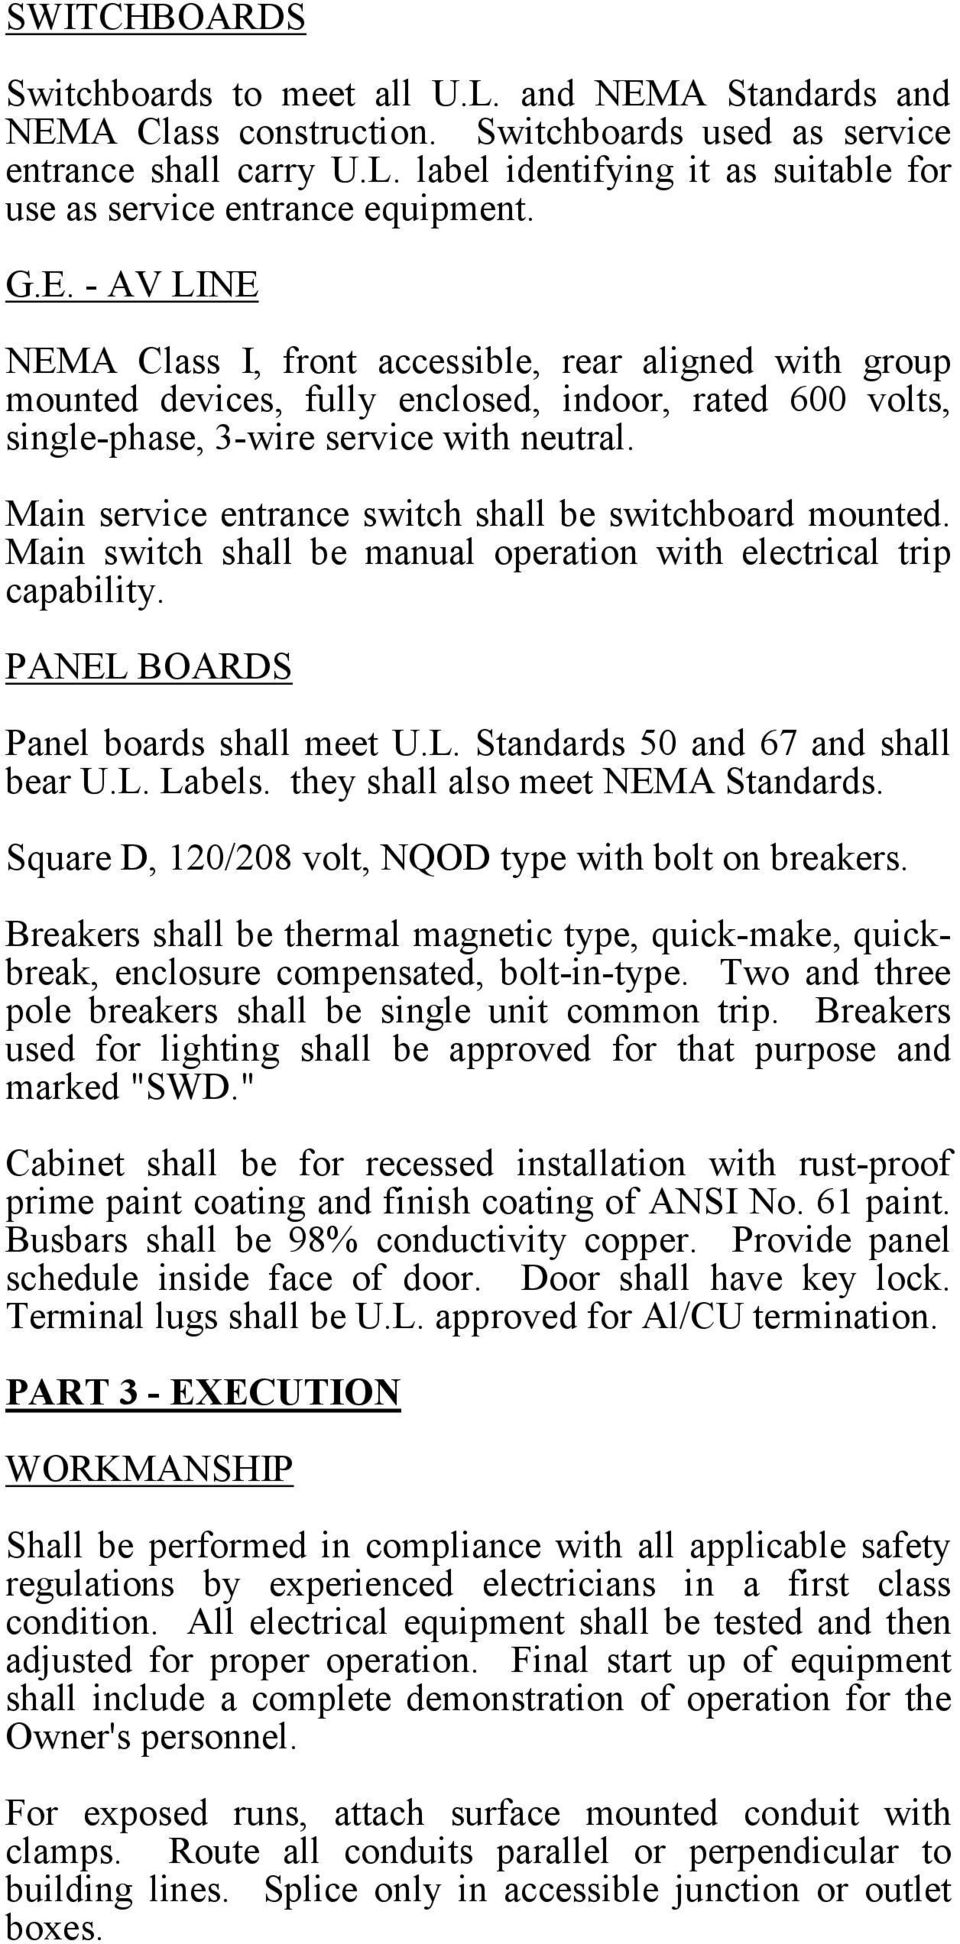 All Work Must Conform To The National Electric Code Latest Edition Electrical Installation Wiring Pictures Cctv Conduits Color Coding Main Service Entrance Switch Shall Be Switchboard Mounted Manual Operation With 5